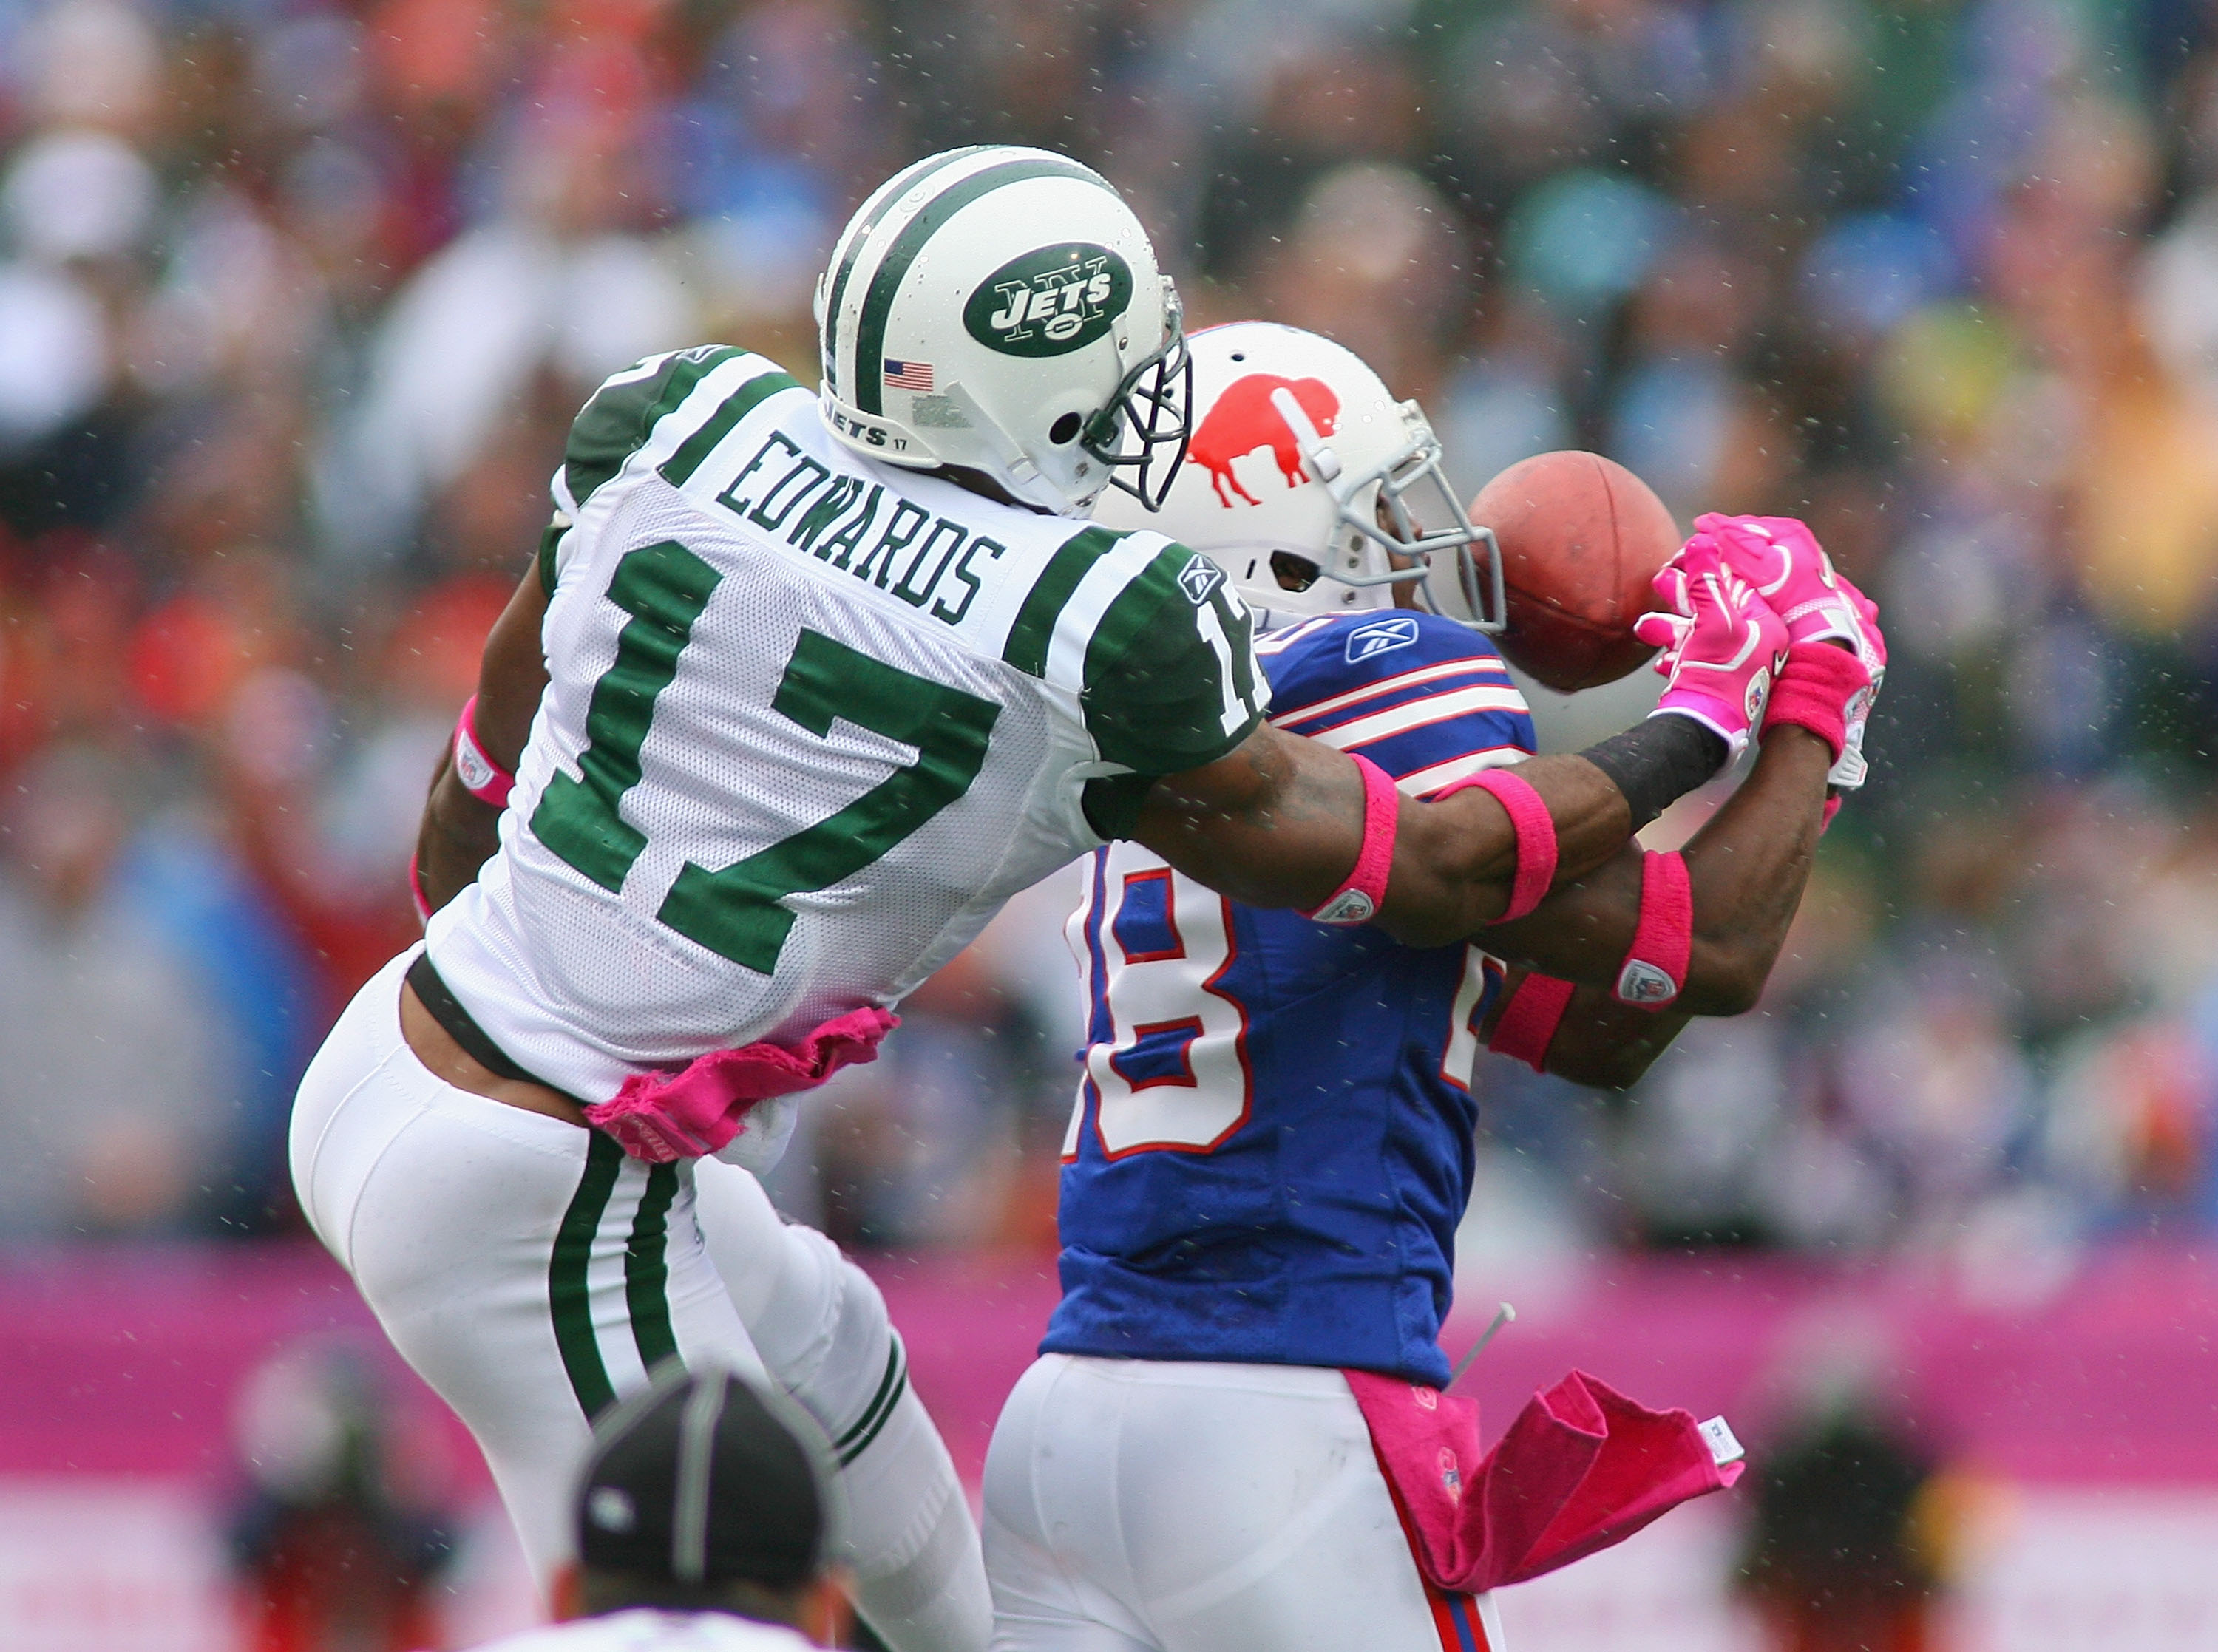 ORCHARD PARK, NY - OCTOBER 03: Leodis McKelvin #28 of  the Buffalo Bills breaks up a pass intended for Braylon Edwards #17 of the New York Jets at Ralph Wilson Stadium on October 3, 2010 in Orchard Park, New York. The Jets won 38-14. (Photo by Rick Stewar